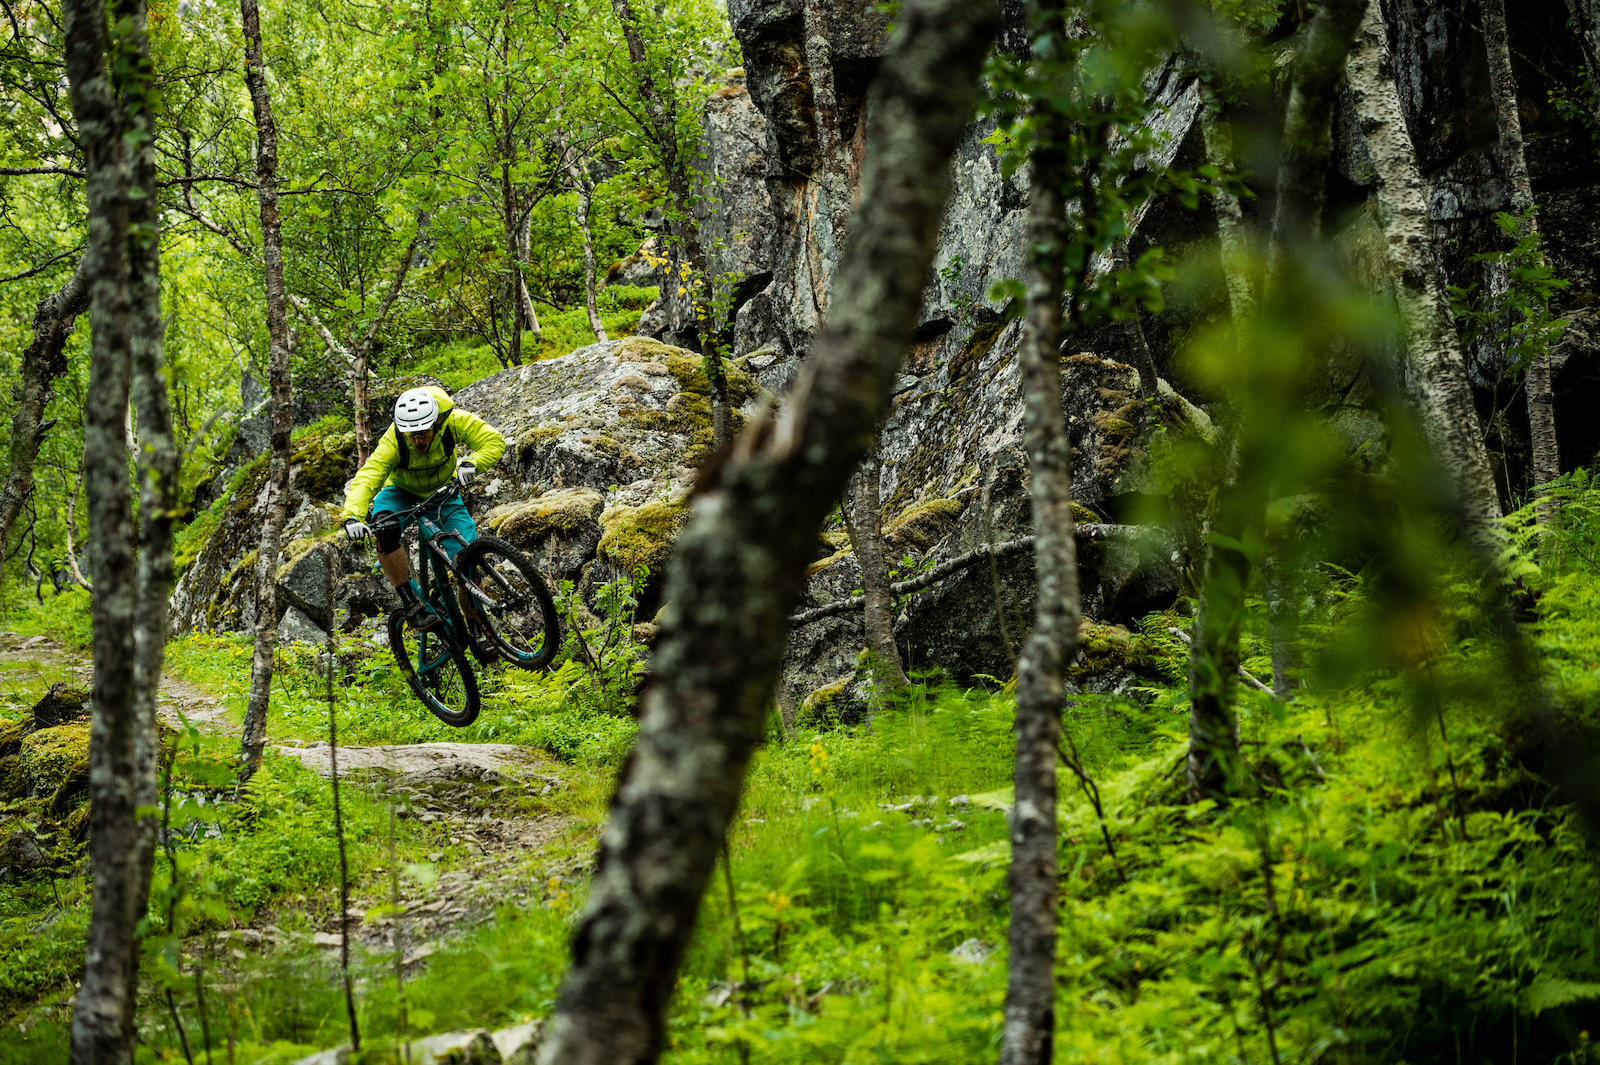 Joey Schulser riding in Rombak Norway.